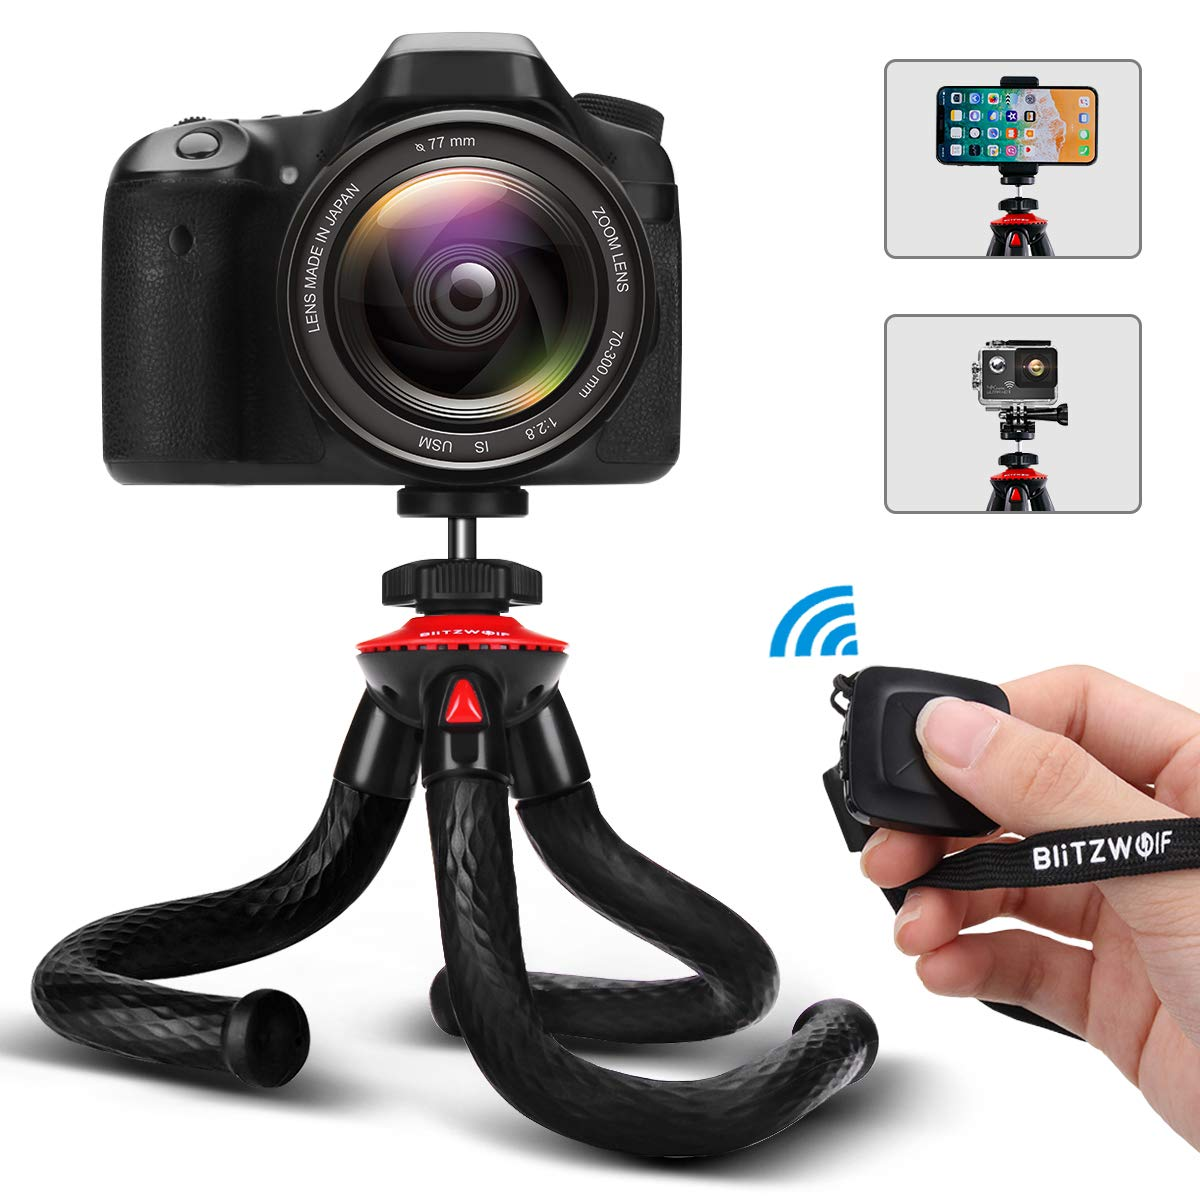 Camera Tripod, BlitzWolf Flexible Tripod, Phone Tripod with Bluetooth Remote & Phone Holder for iPhone Xs Max, Samsung, with 1/4'' Screw & Adapter for Camera, Action Camera, DSLR Sony Nikon Canon by BlitzWolf